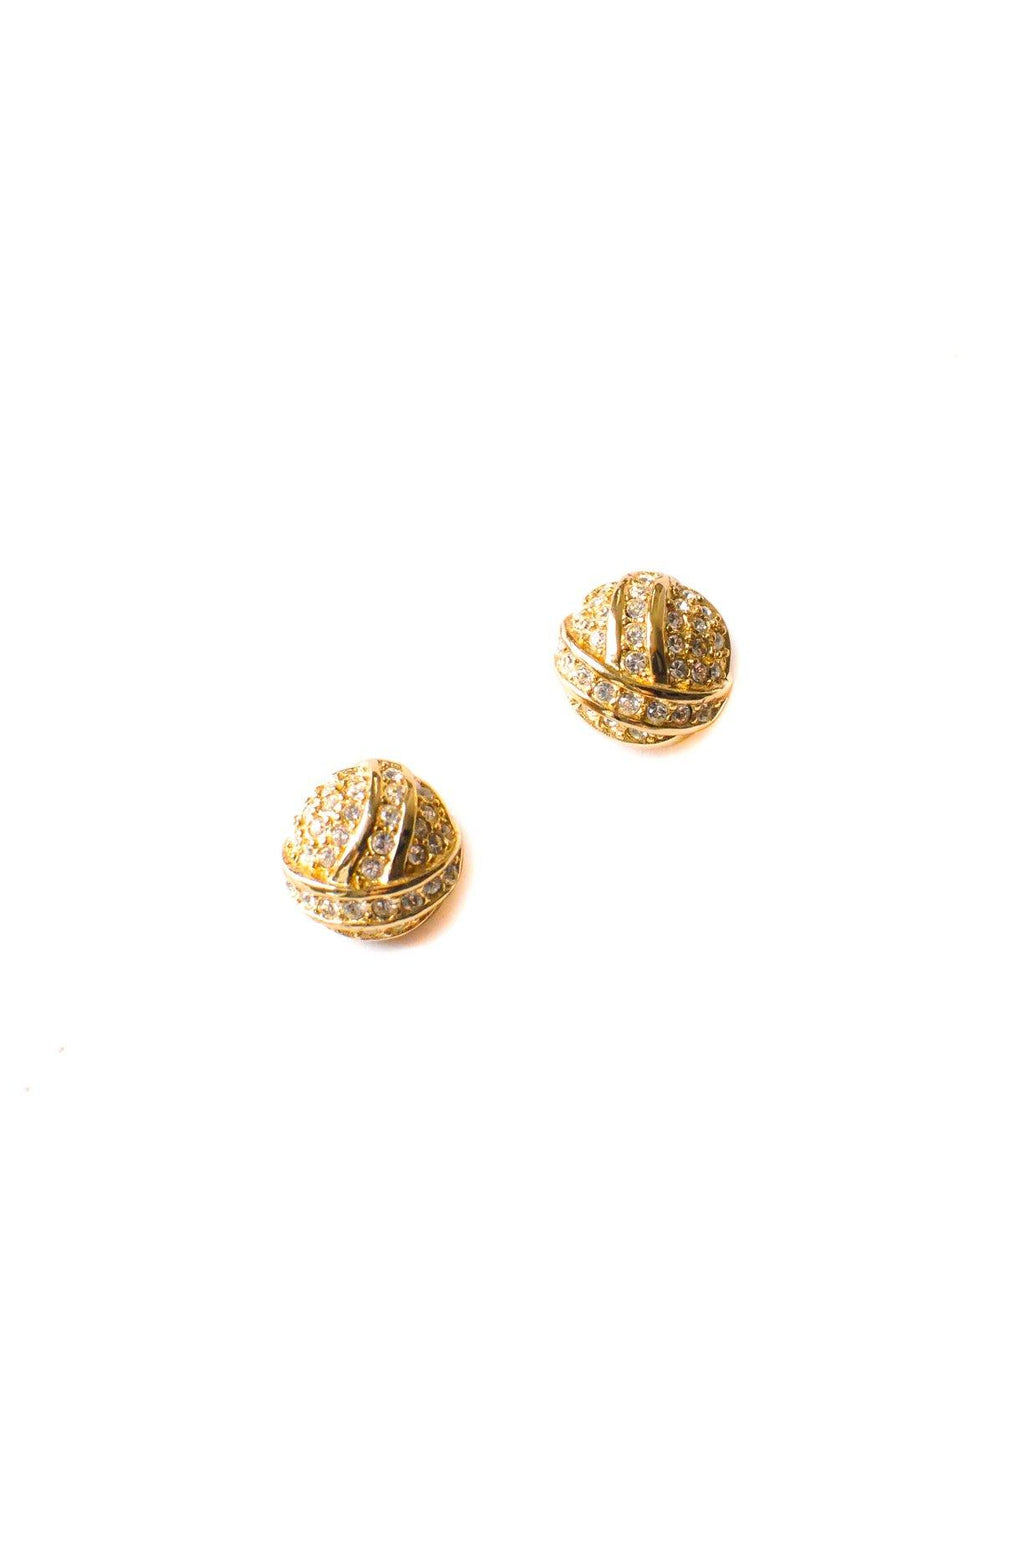 Christian Dior Rhinestone Earrings